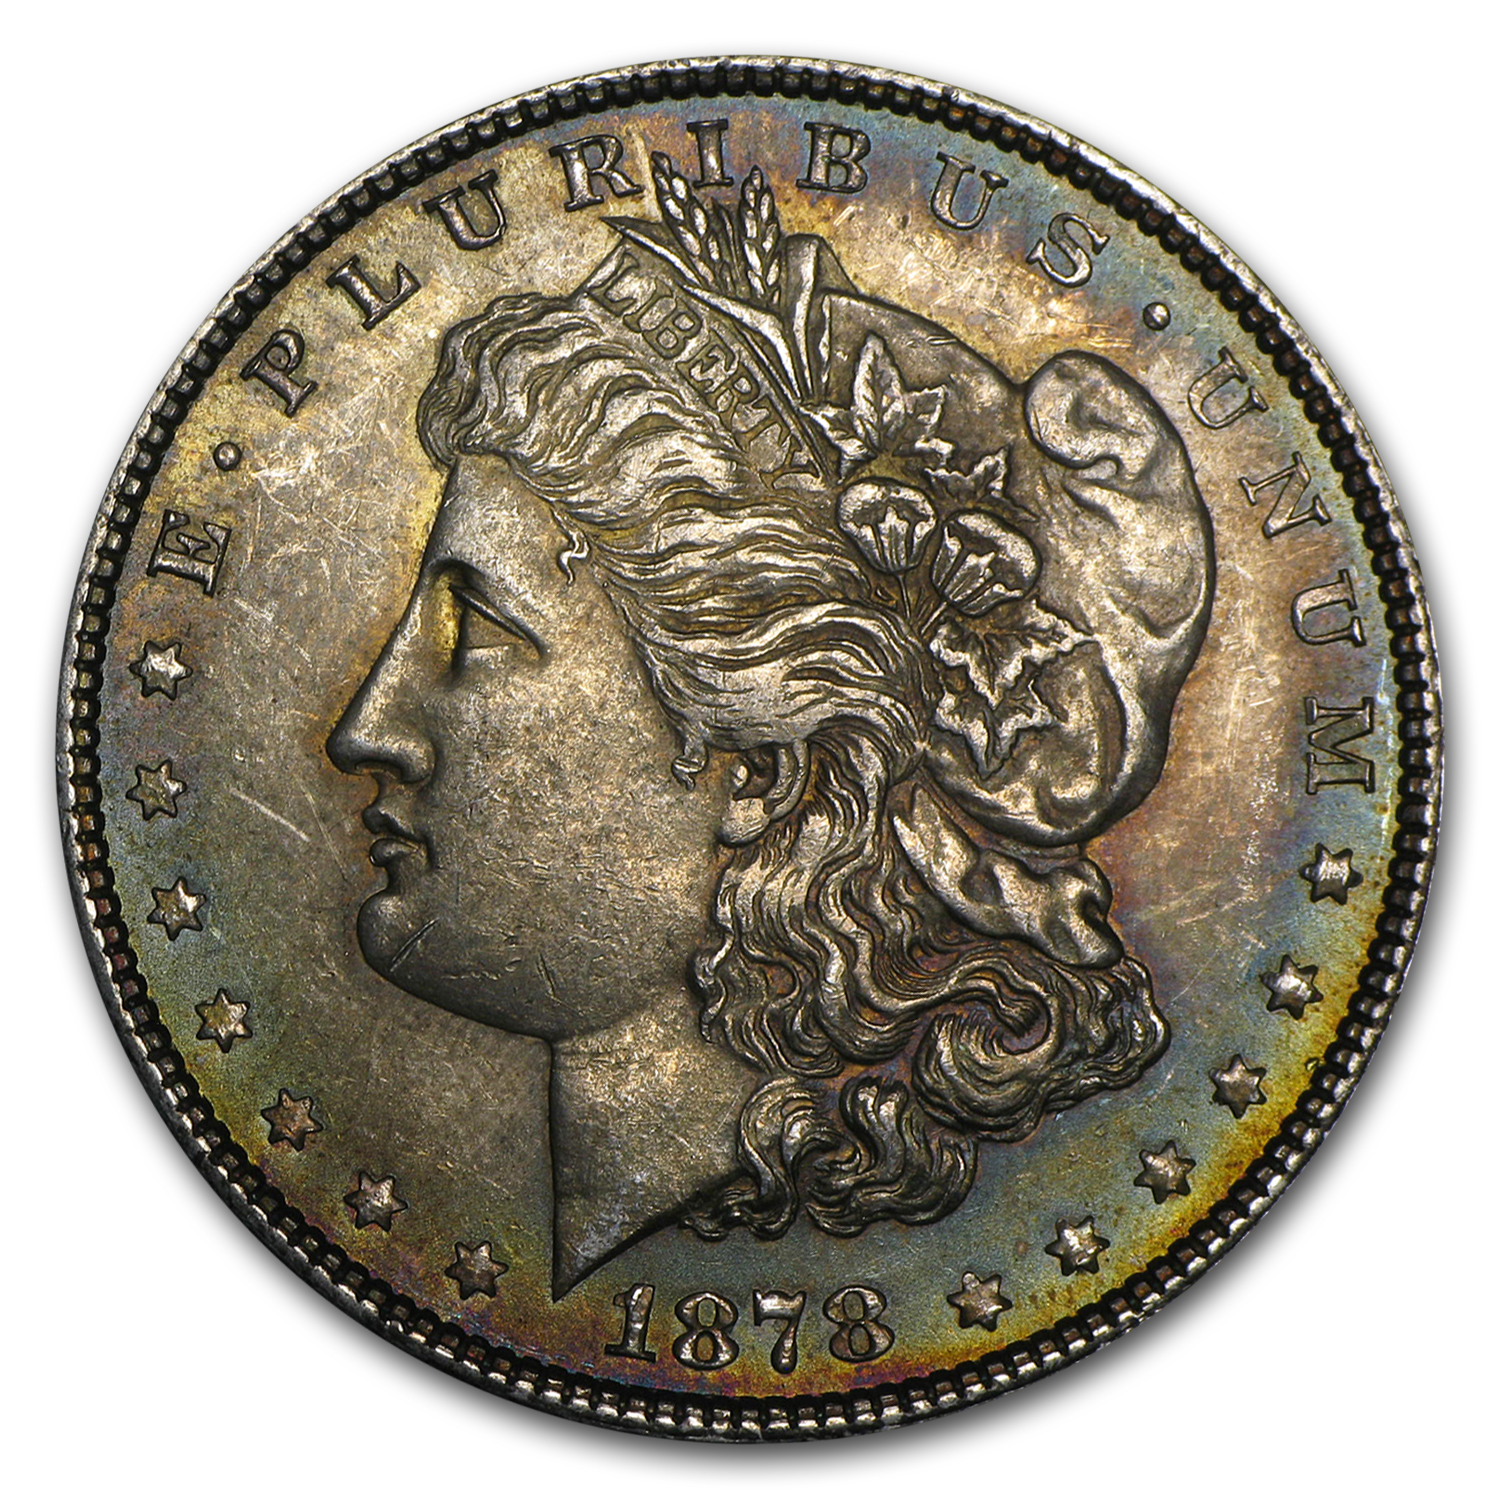 1878 Morgan Dollar 7/8 Tailfeathers AU Strong Details (Cleaned)